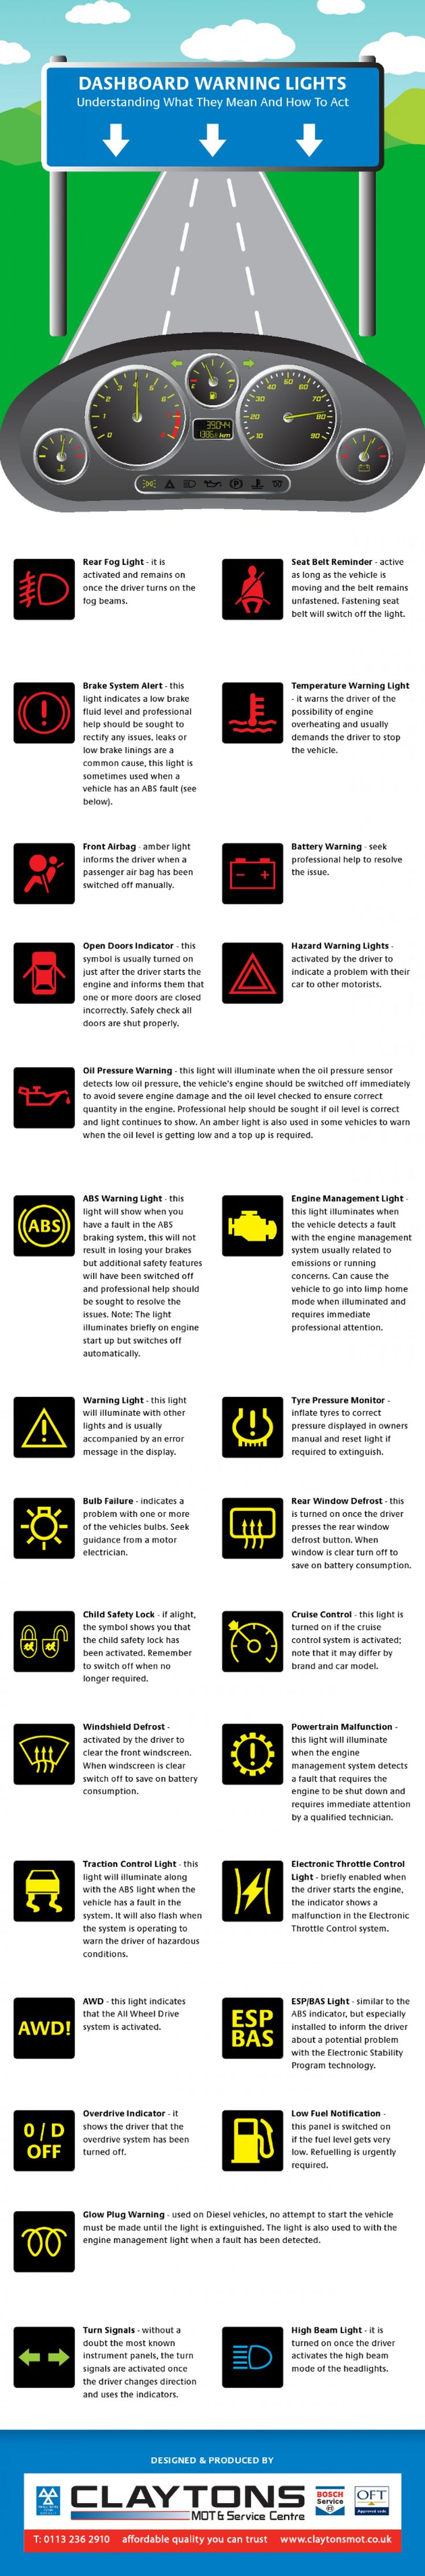 Car Dashboard Warning Lights - Understanding What They Mean & How To Act #infographic